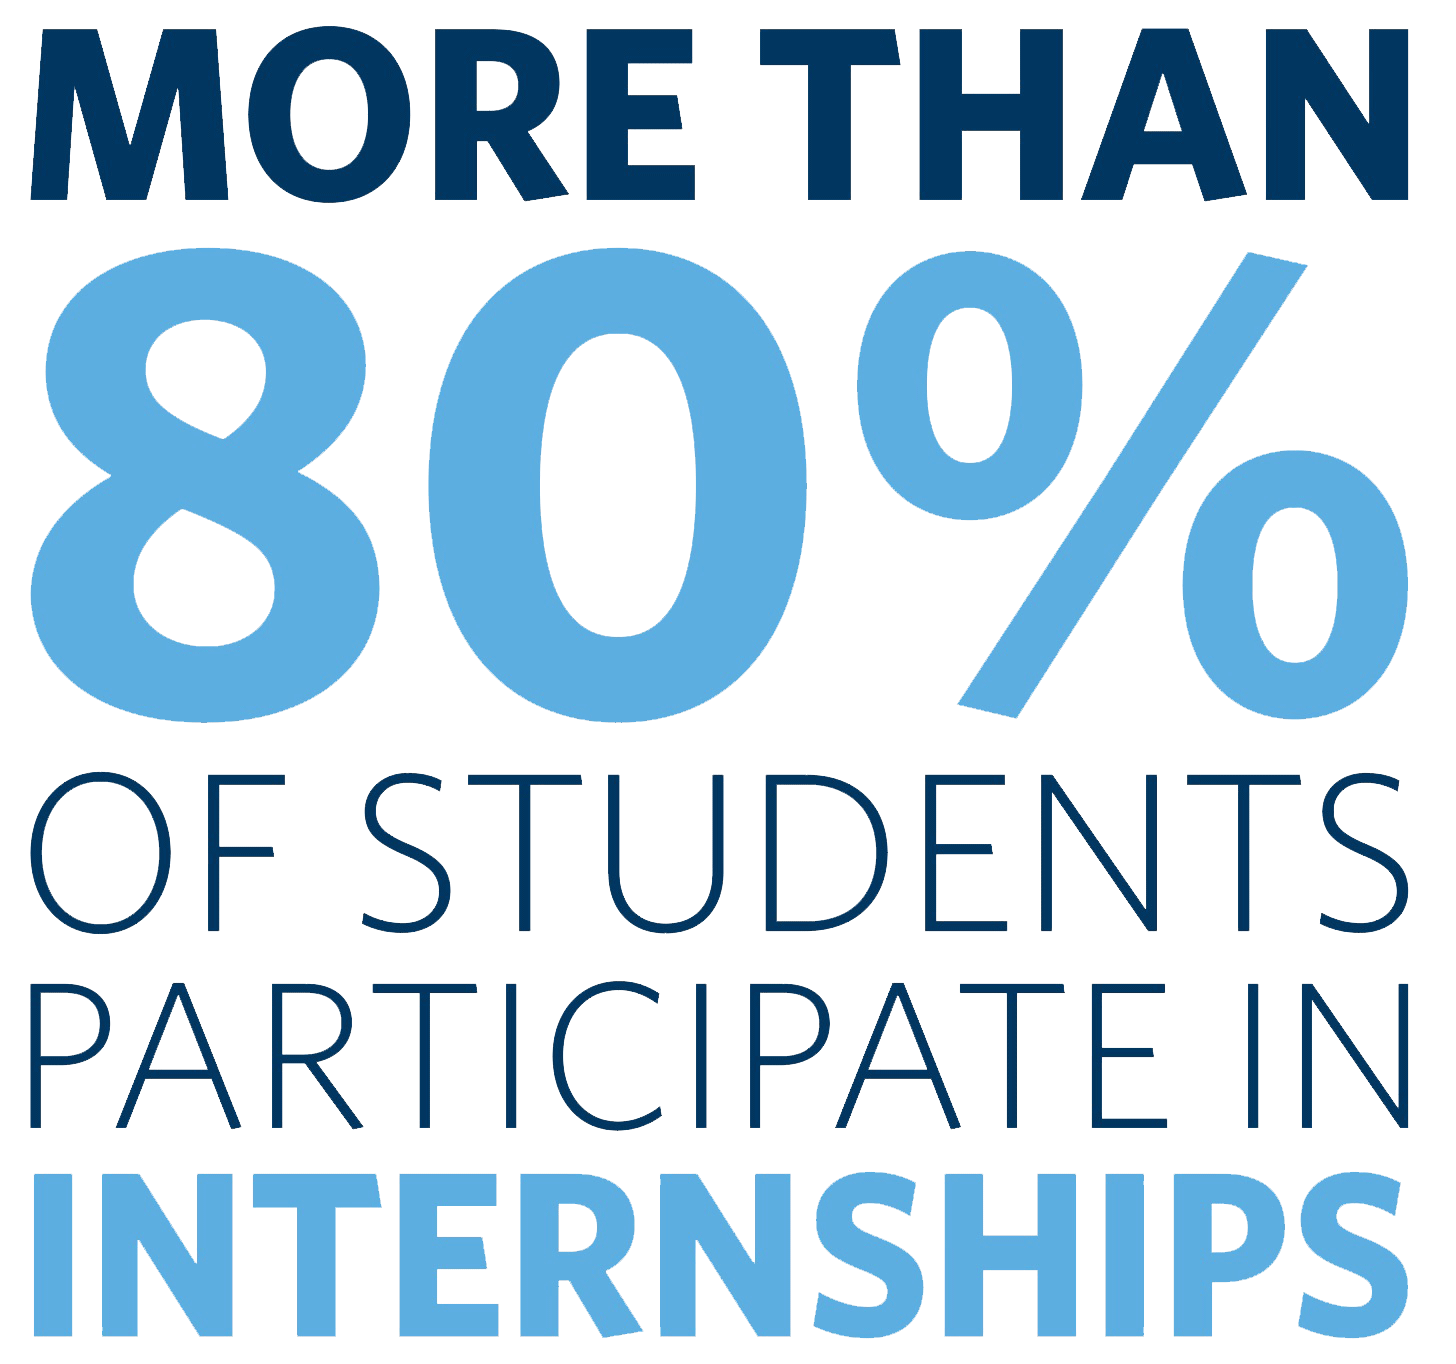 More than 80% of Students Participate in Internships